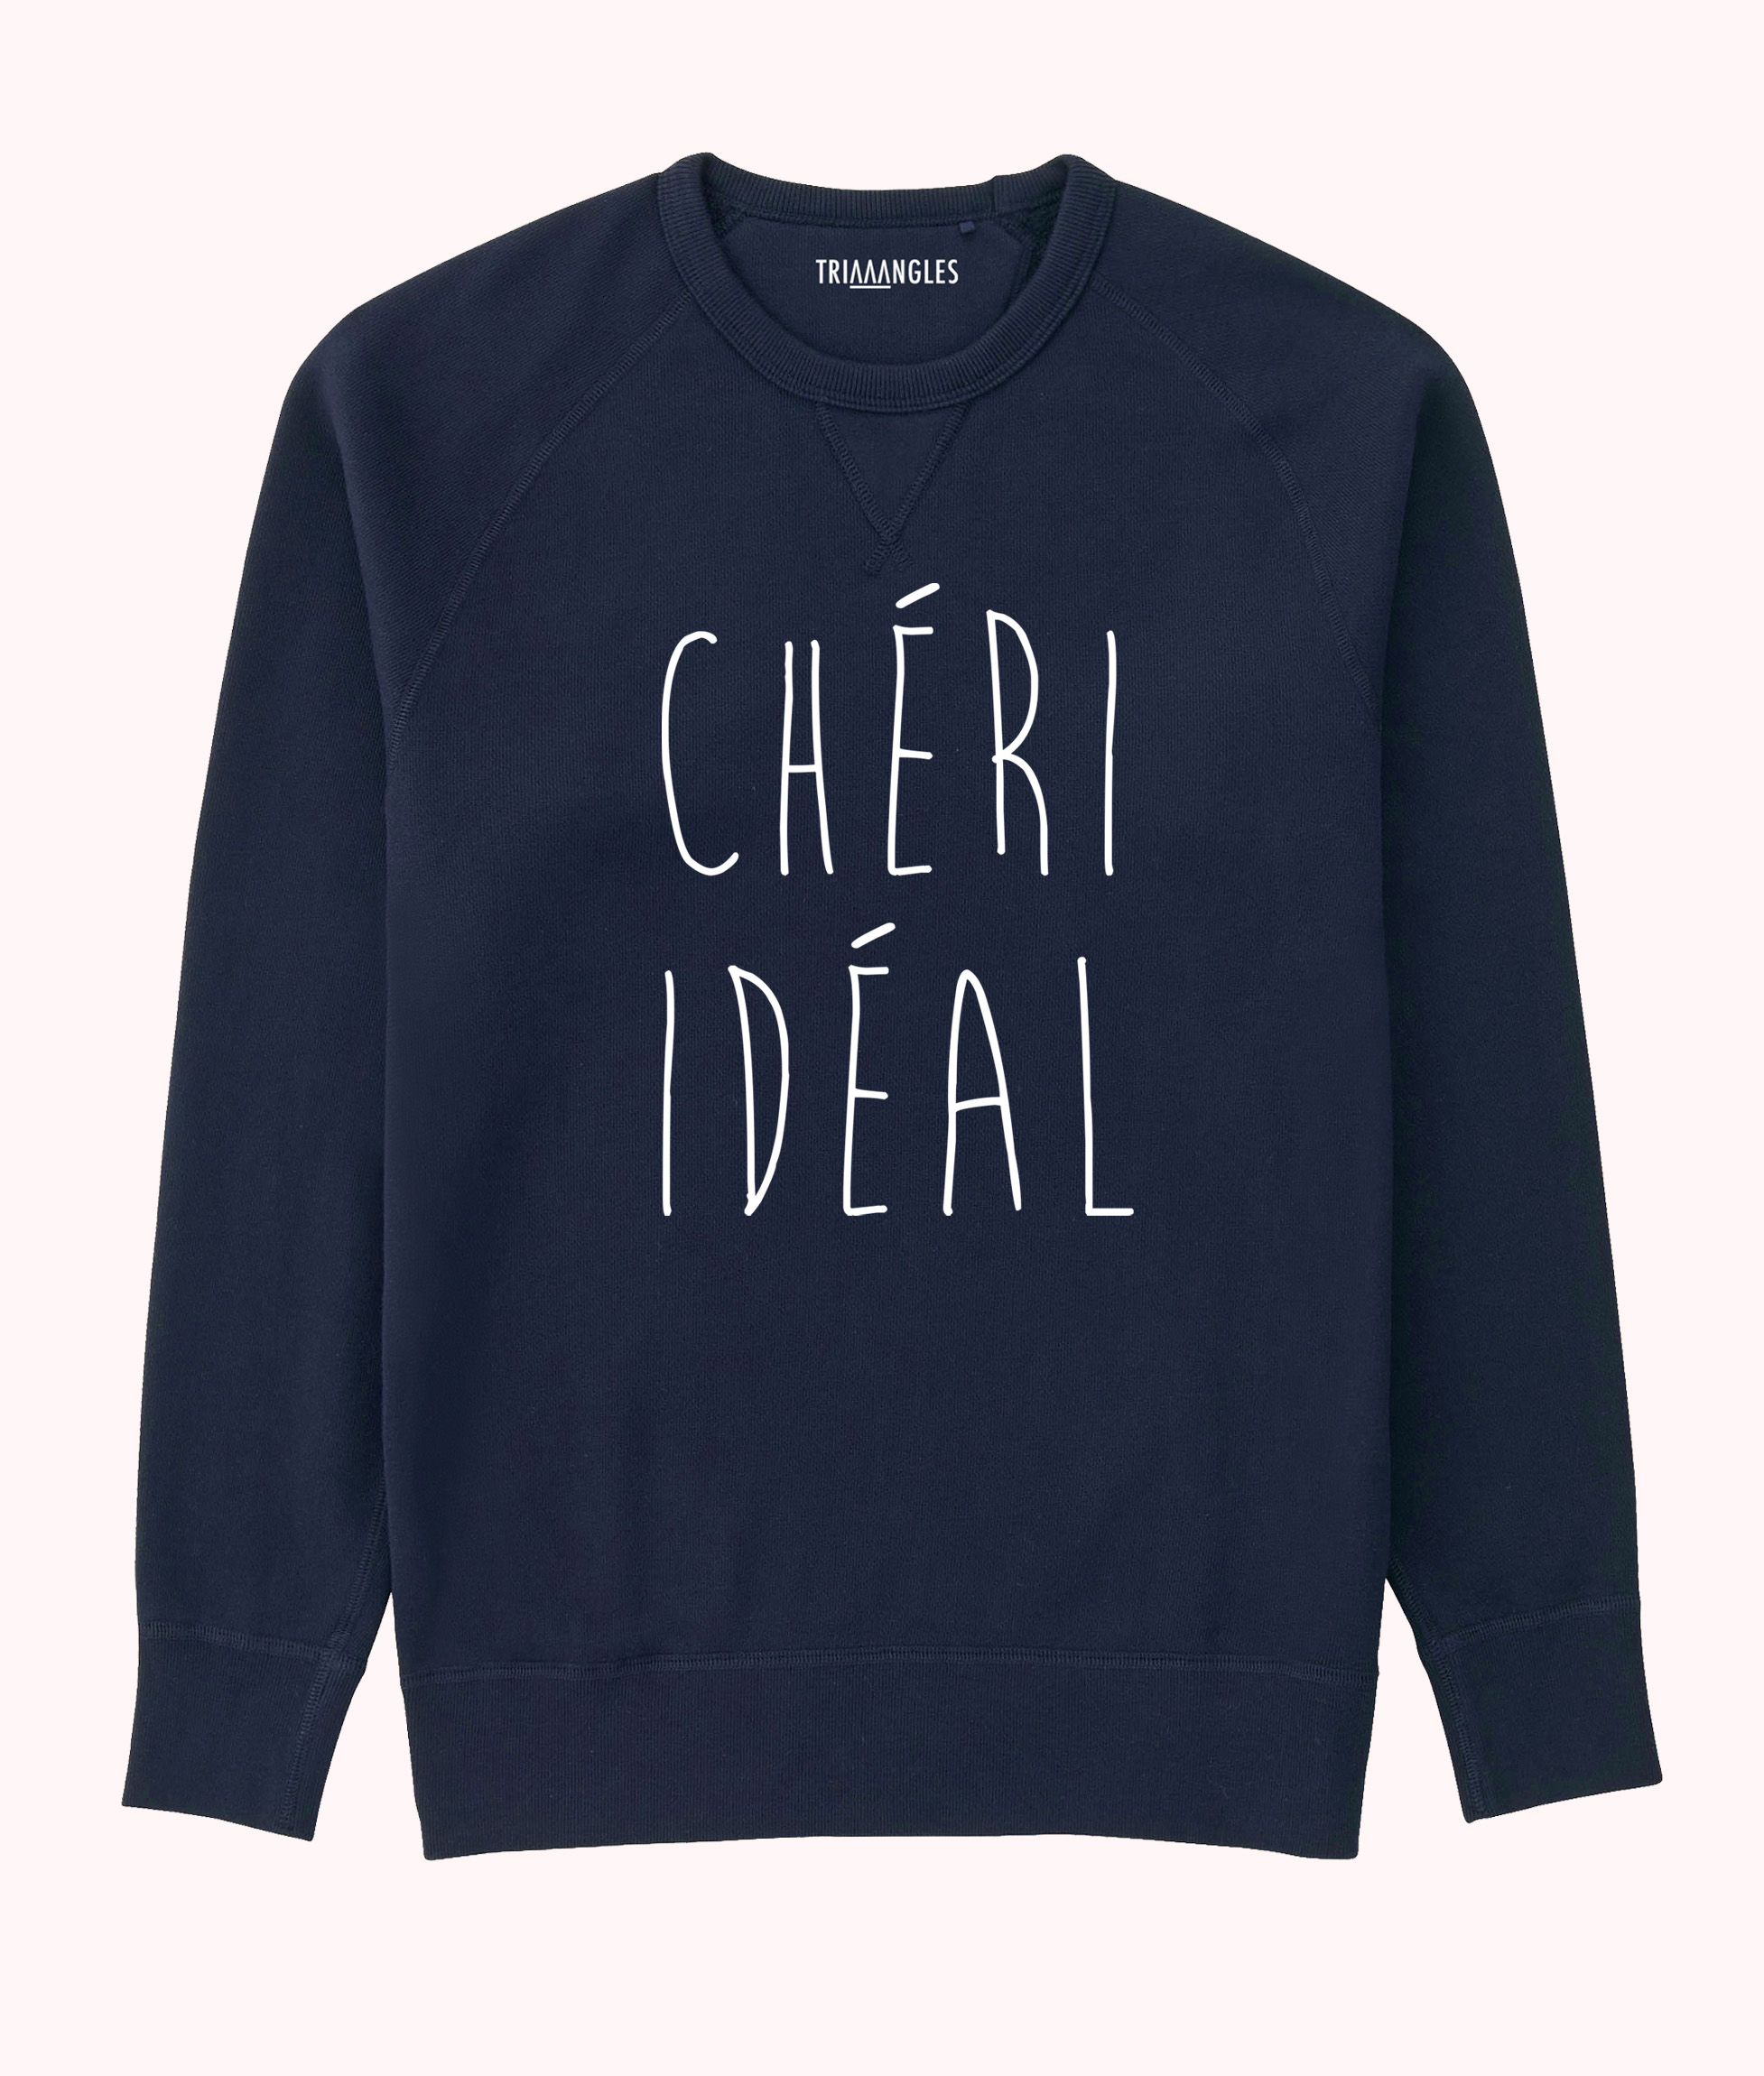 Sweat Navy Blue Triaaangles coupe homme - Chéri idéal - 49.90€